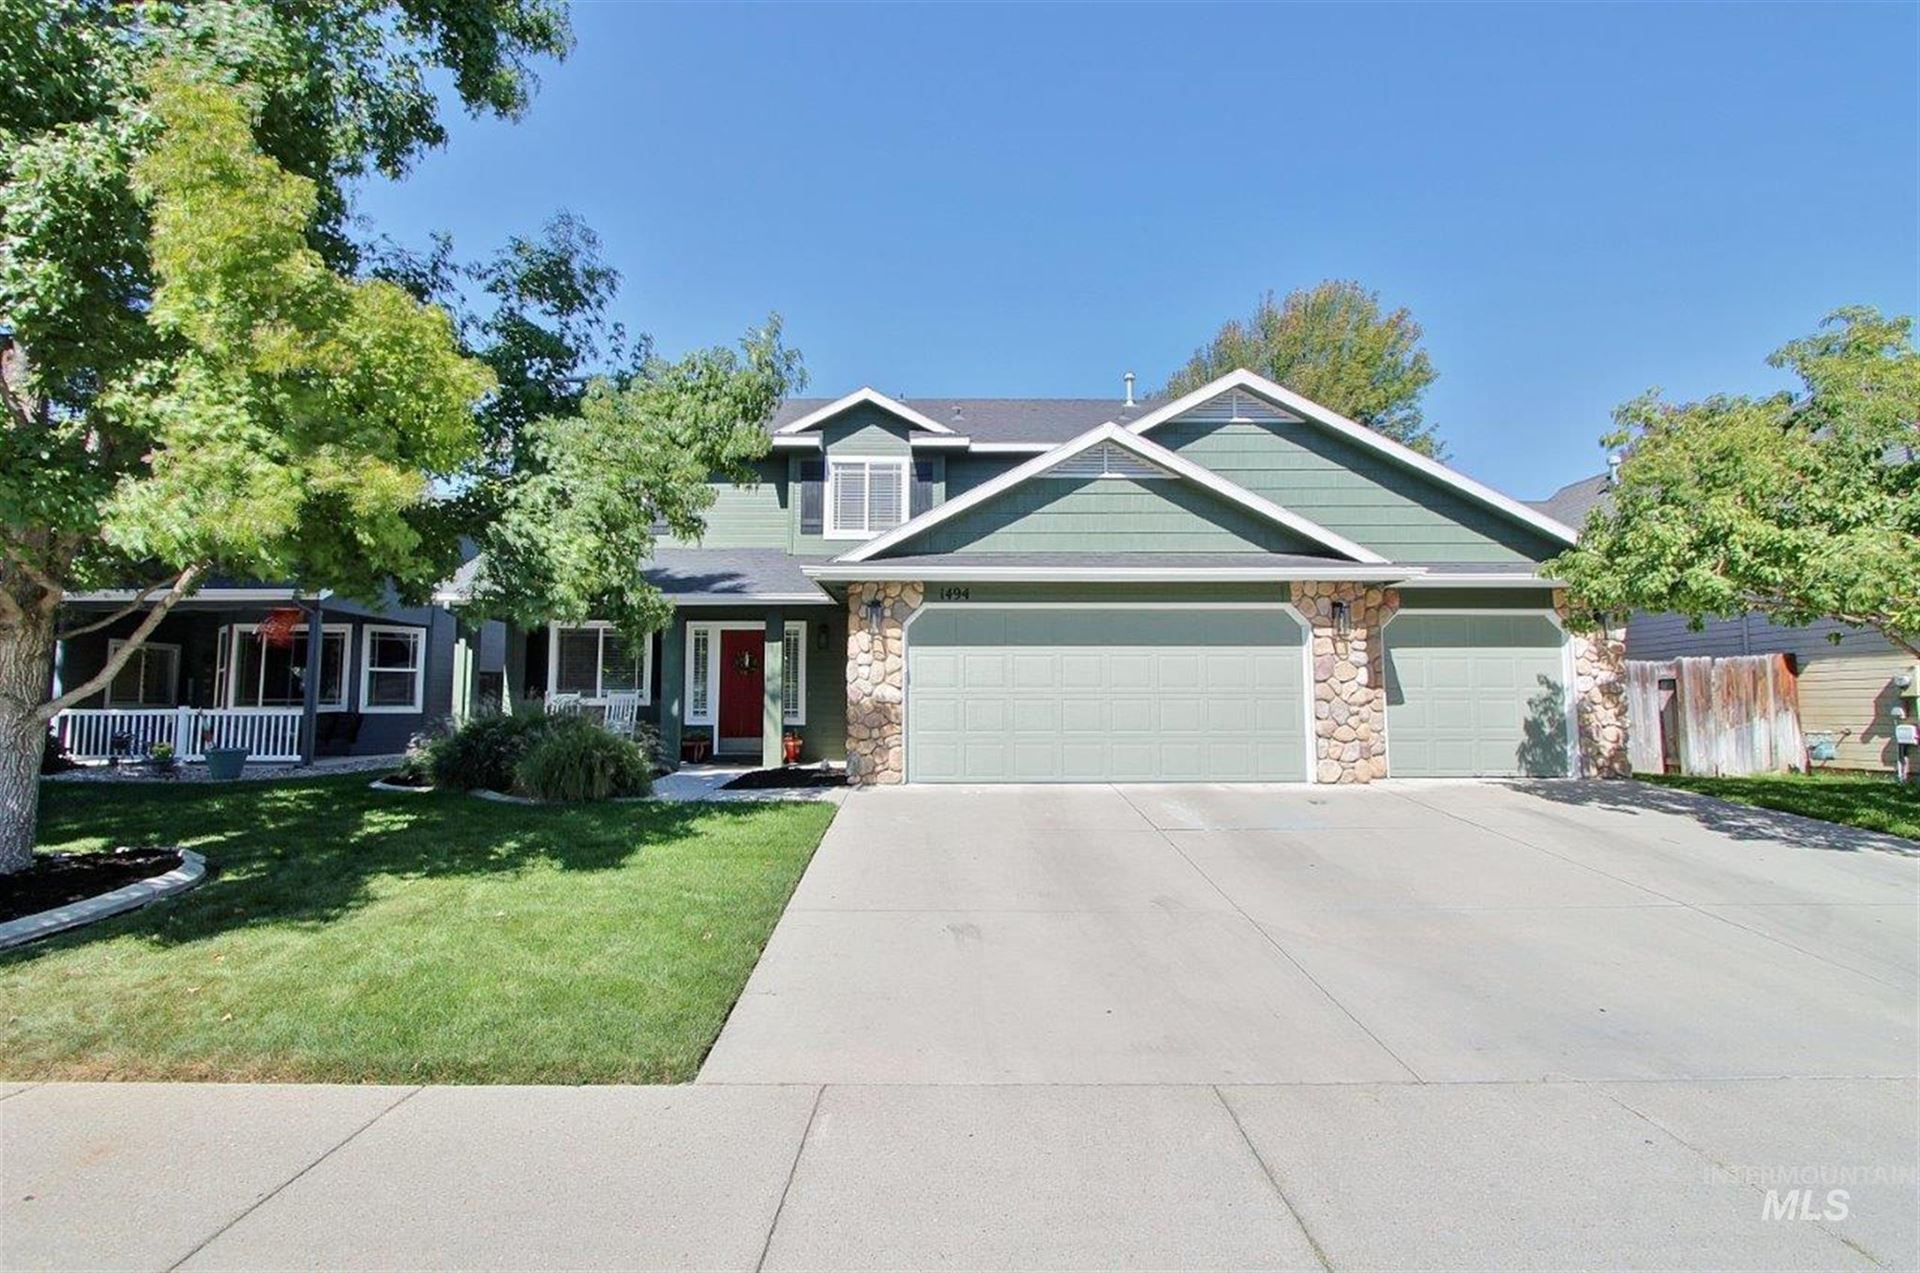 1494 W White Sands Dr, Meridian, ID 83646 - MLS#: 98820740